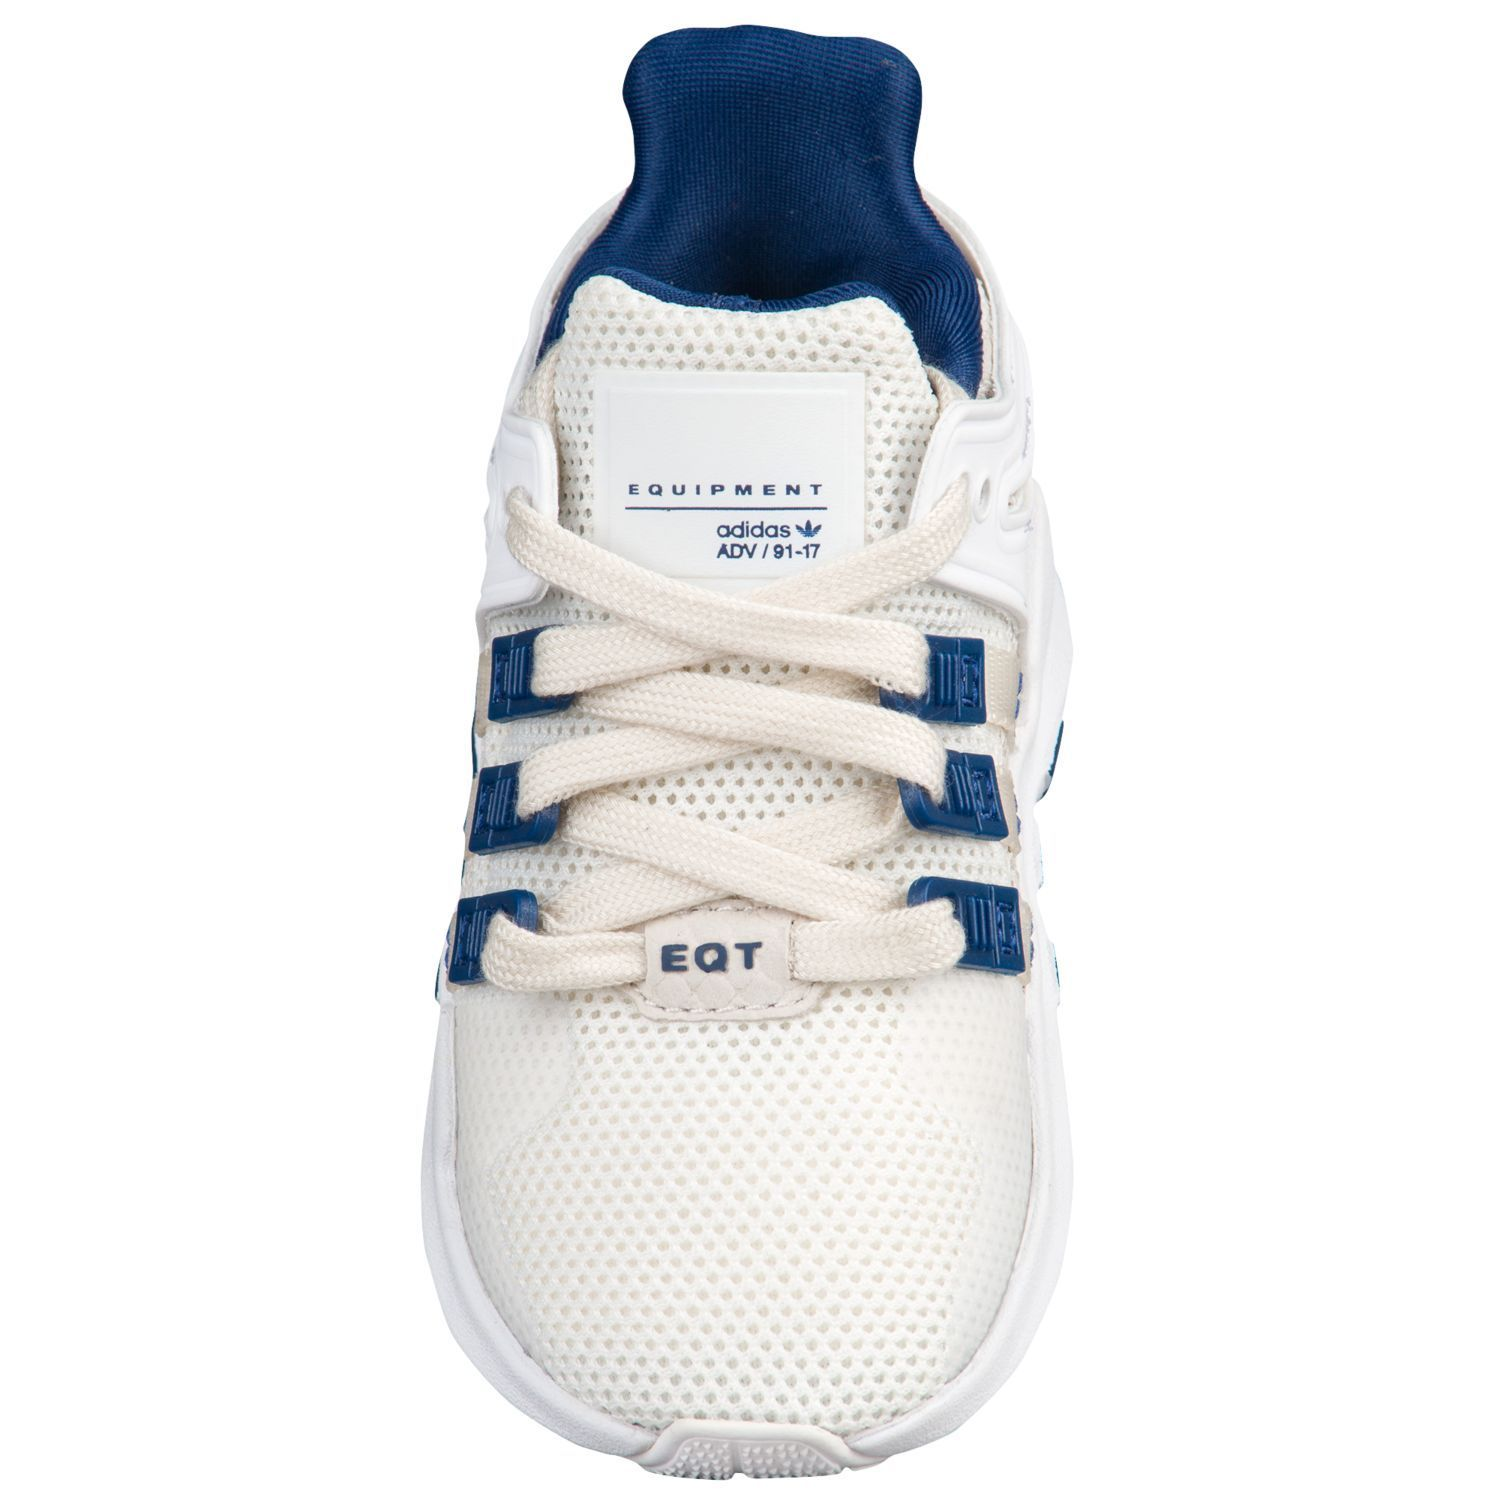 ADIDAS EQT SUPPORT ADV TD CHALK WHITE 11-16.5cm  送料無料